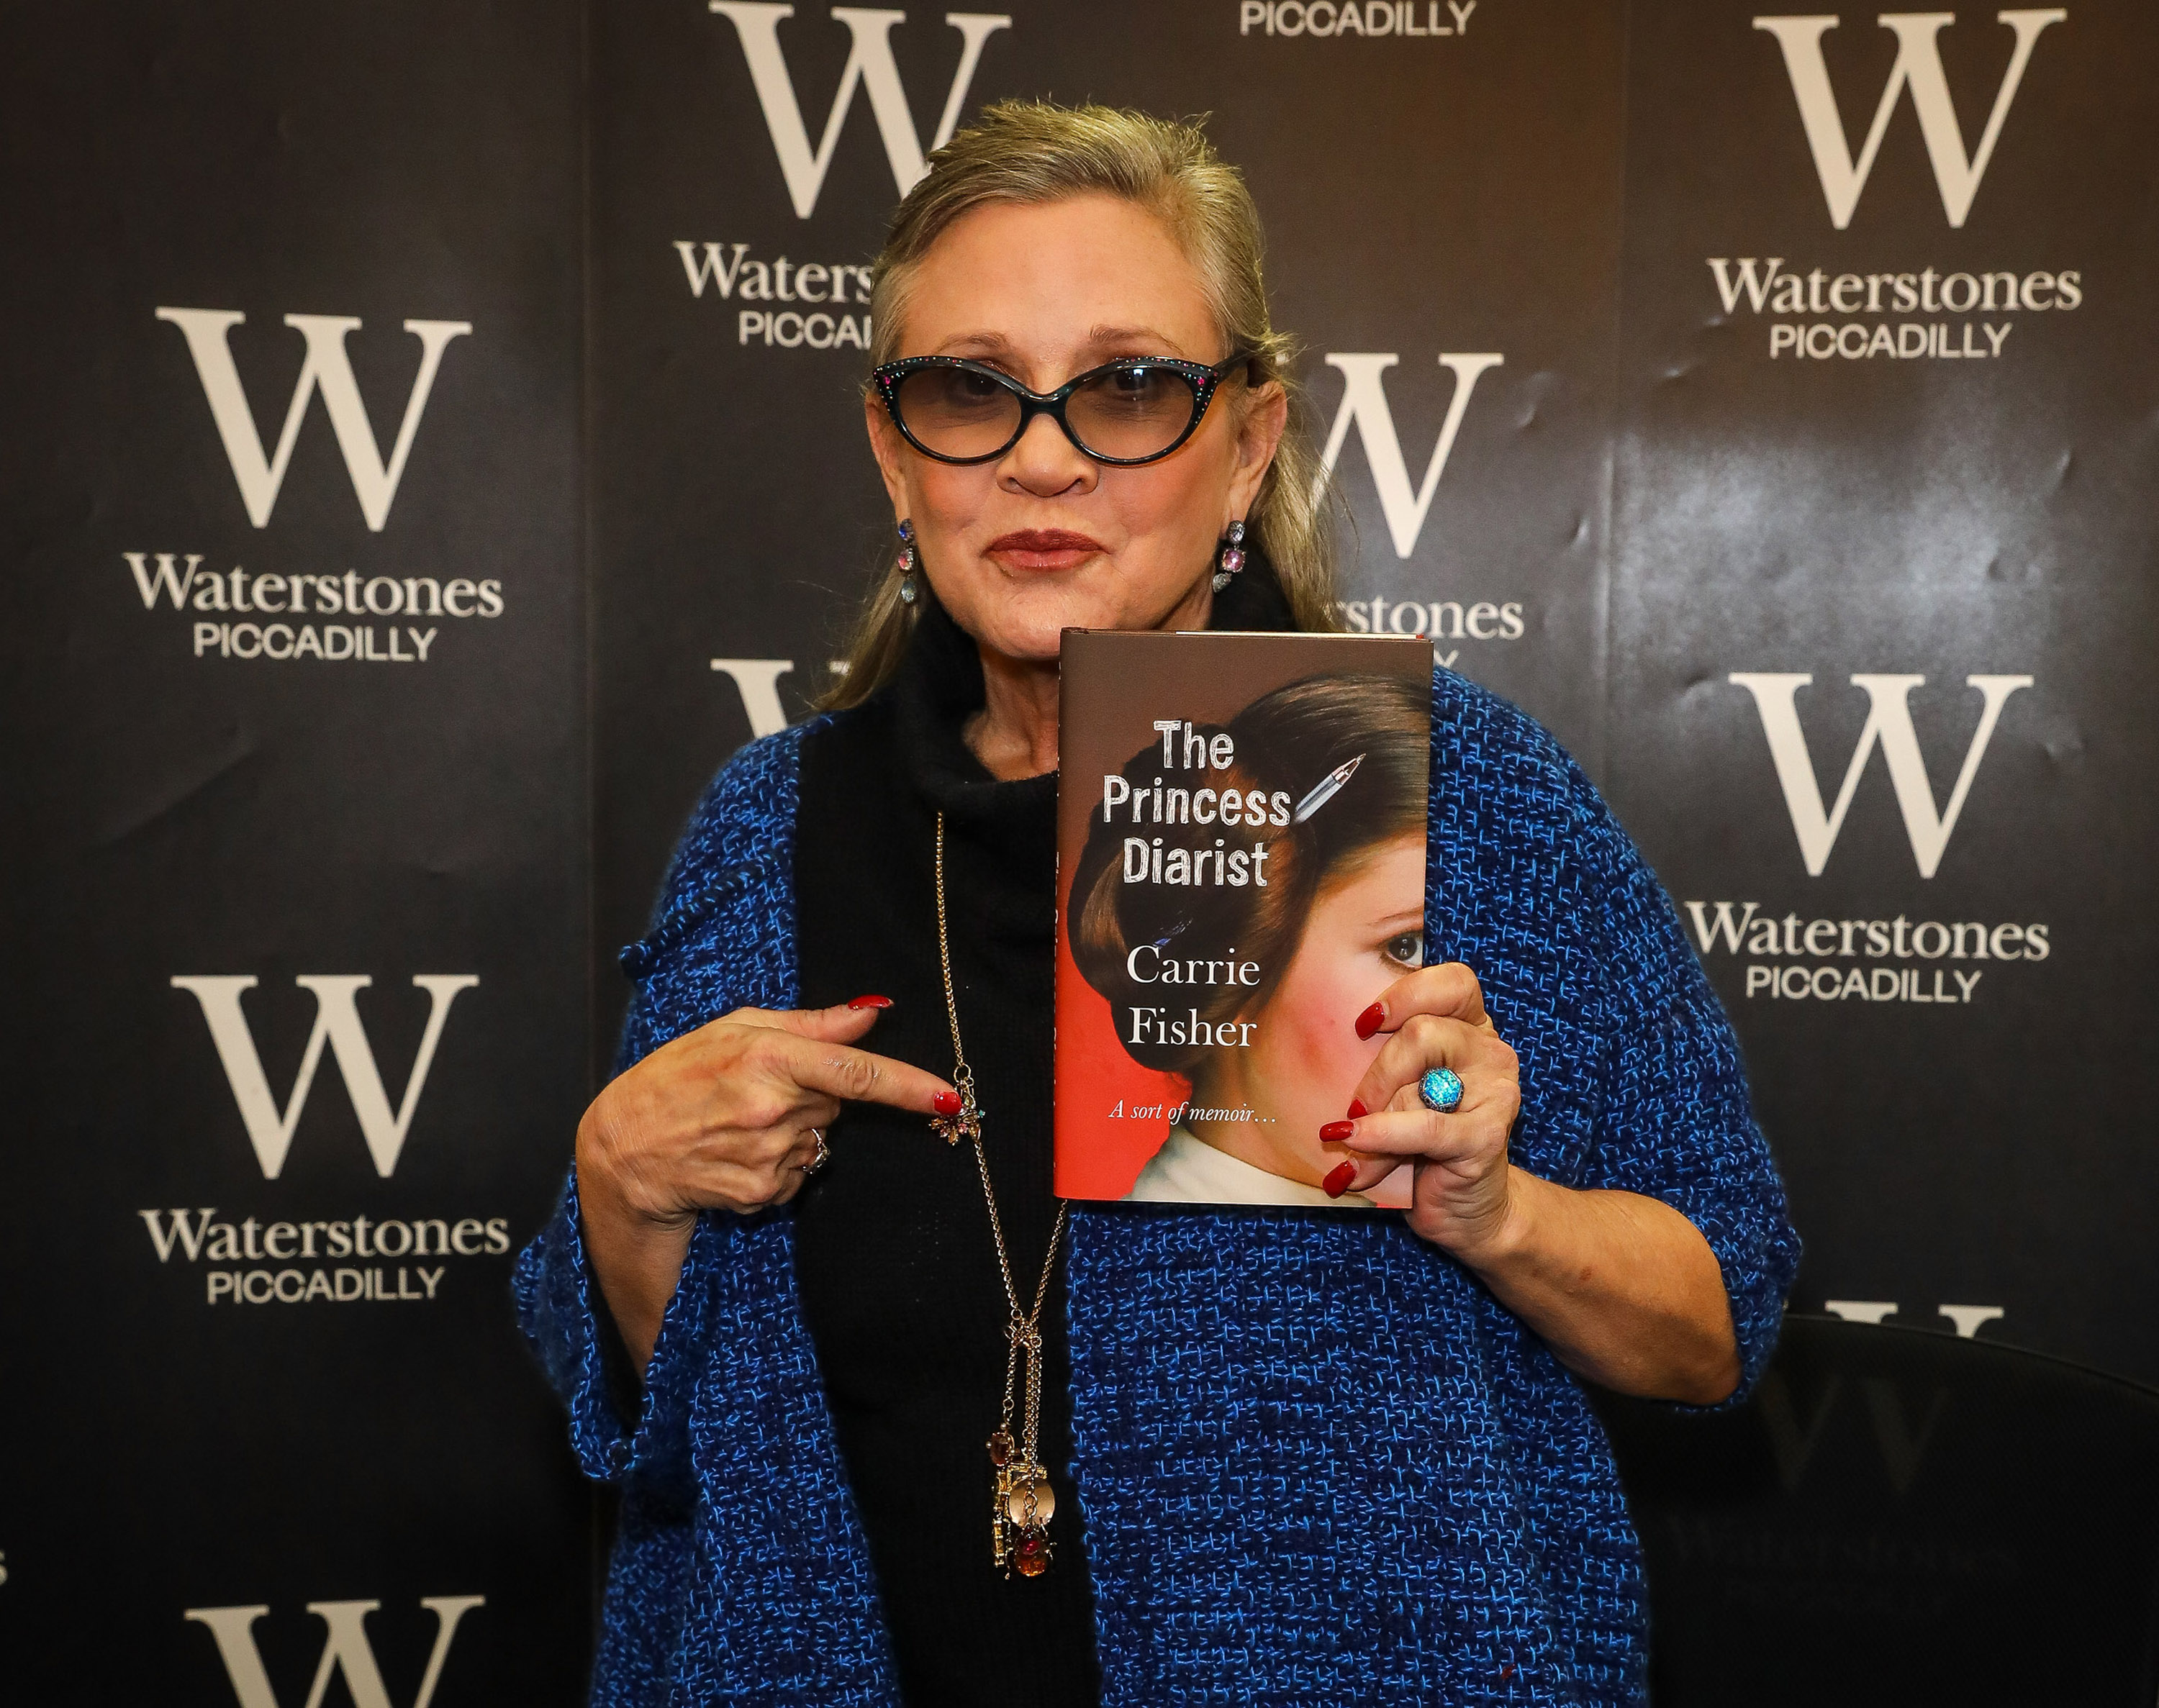 Carrie Fisher signs copies of her new book  The Princess Diarist  at Waterstones, Piccadilly, on December 11, 2016 in London, England.